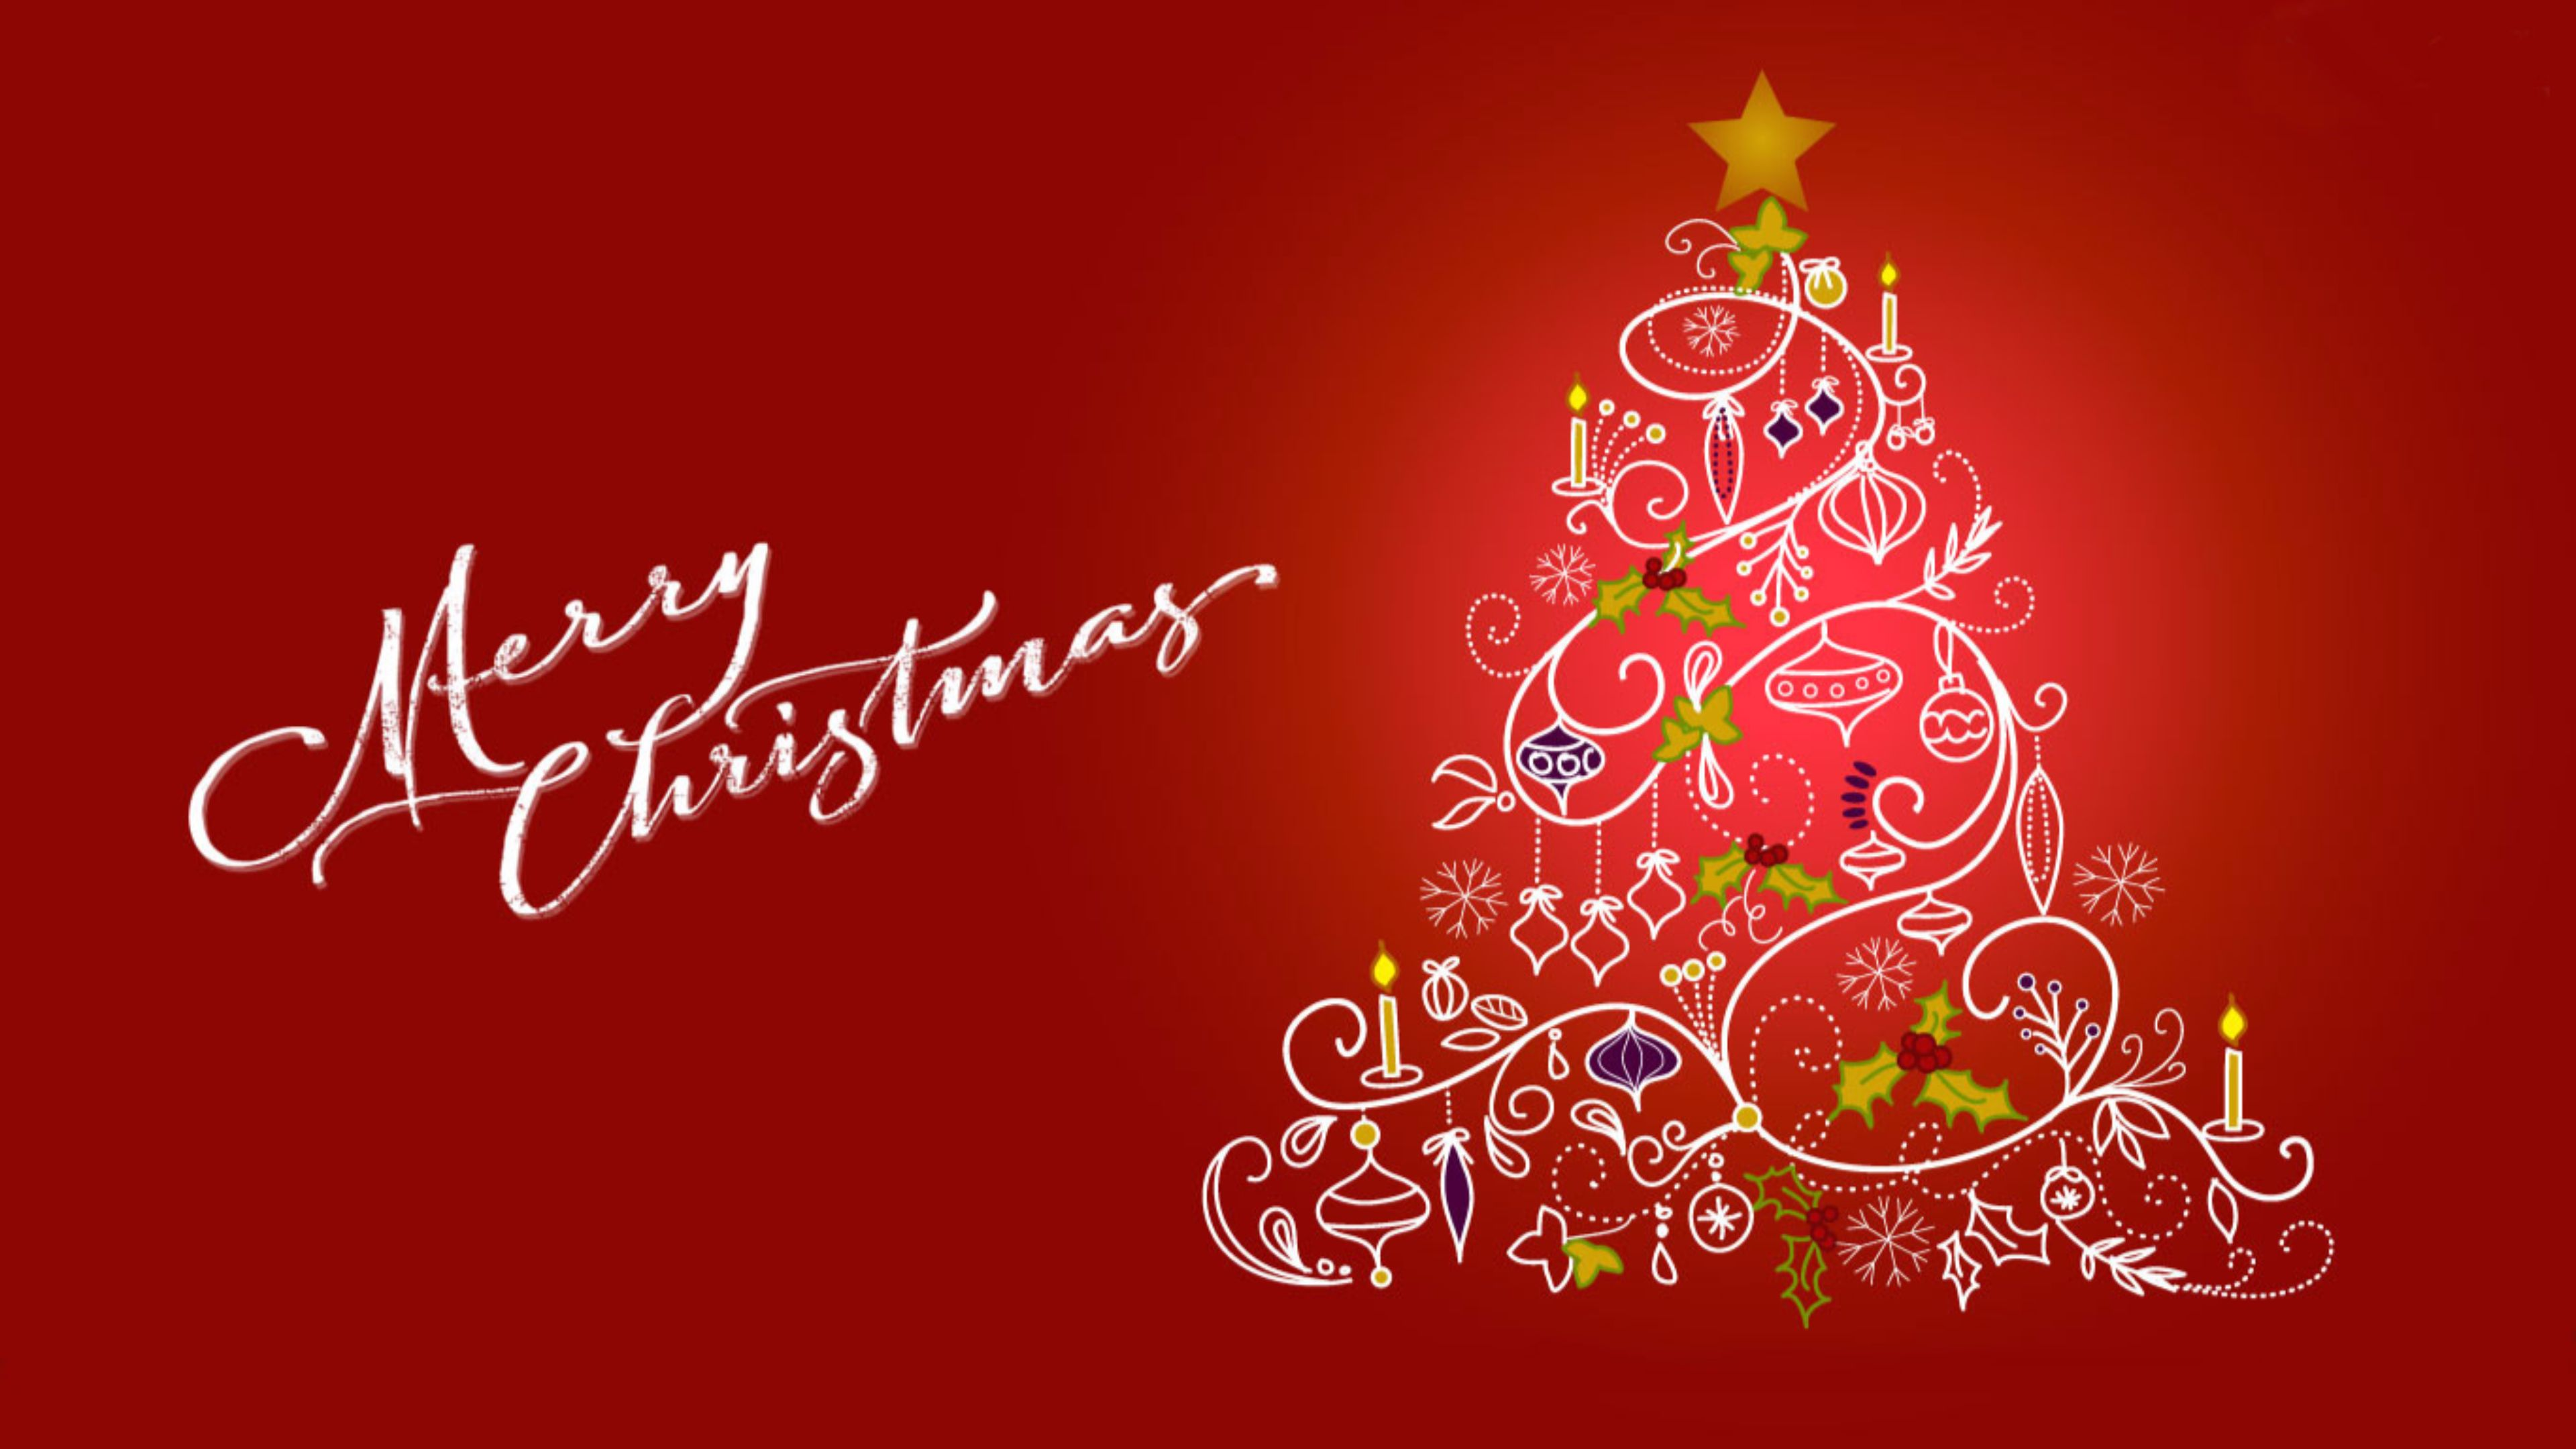 happy merry christmas greetings hd ultra 4k wallpaper